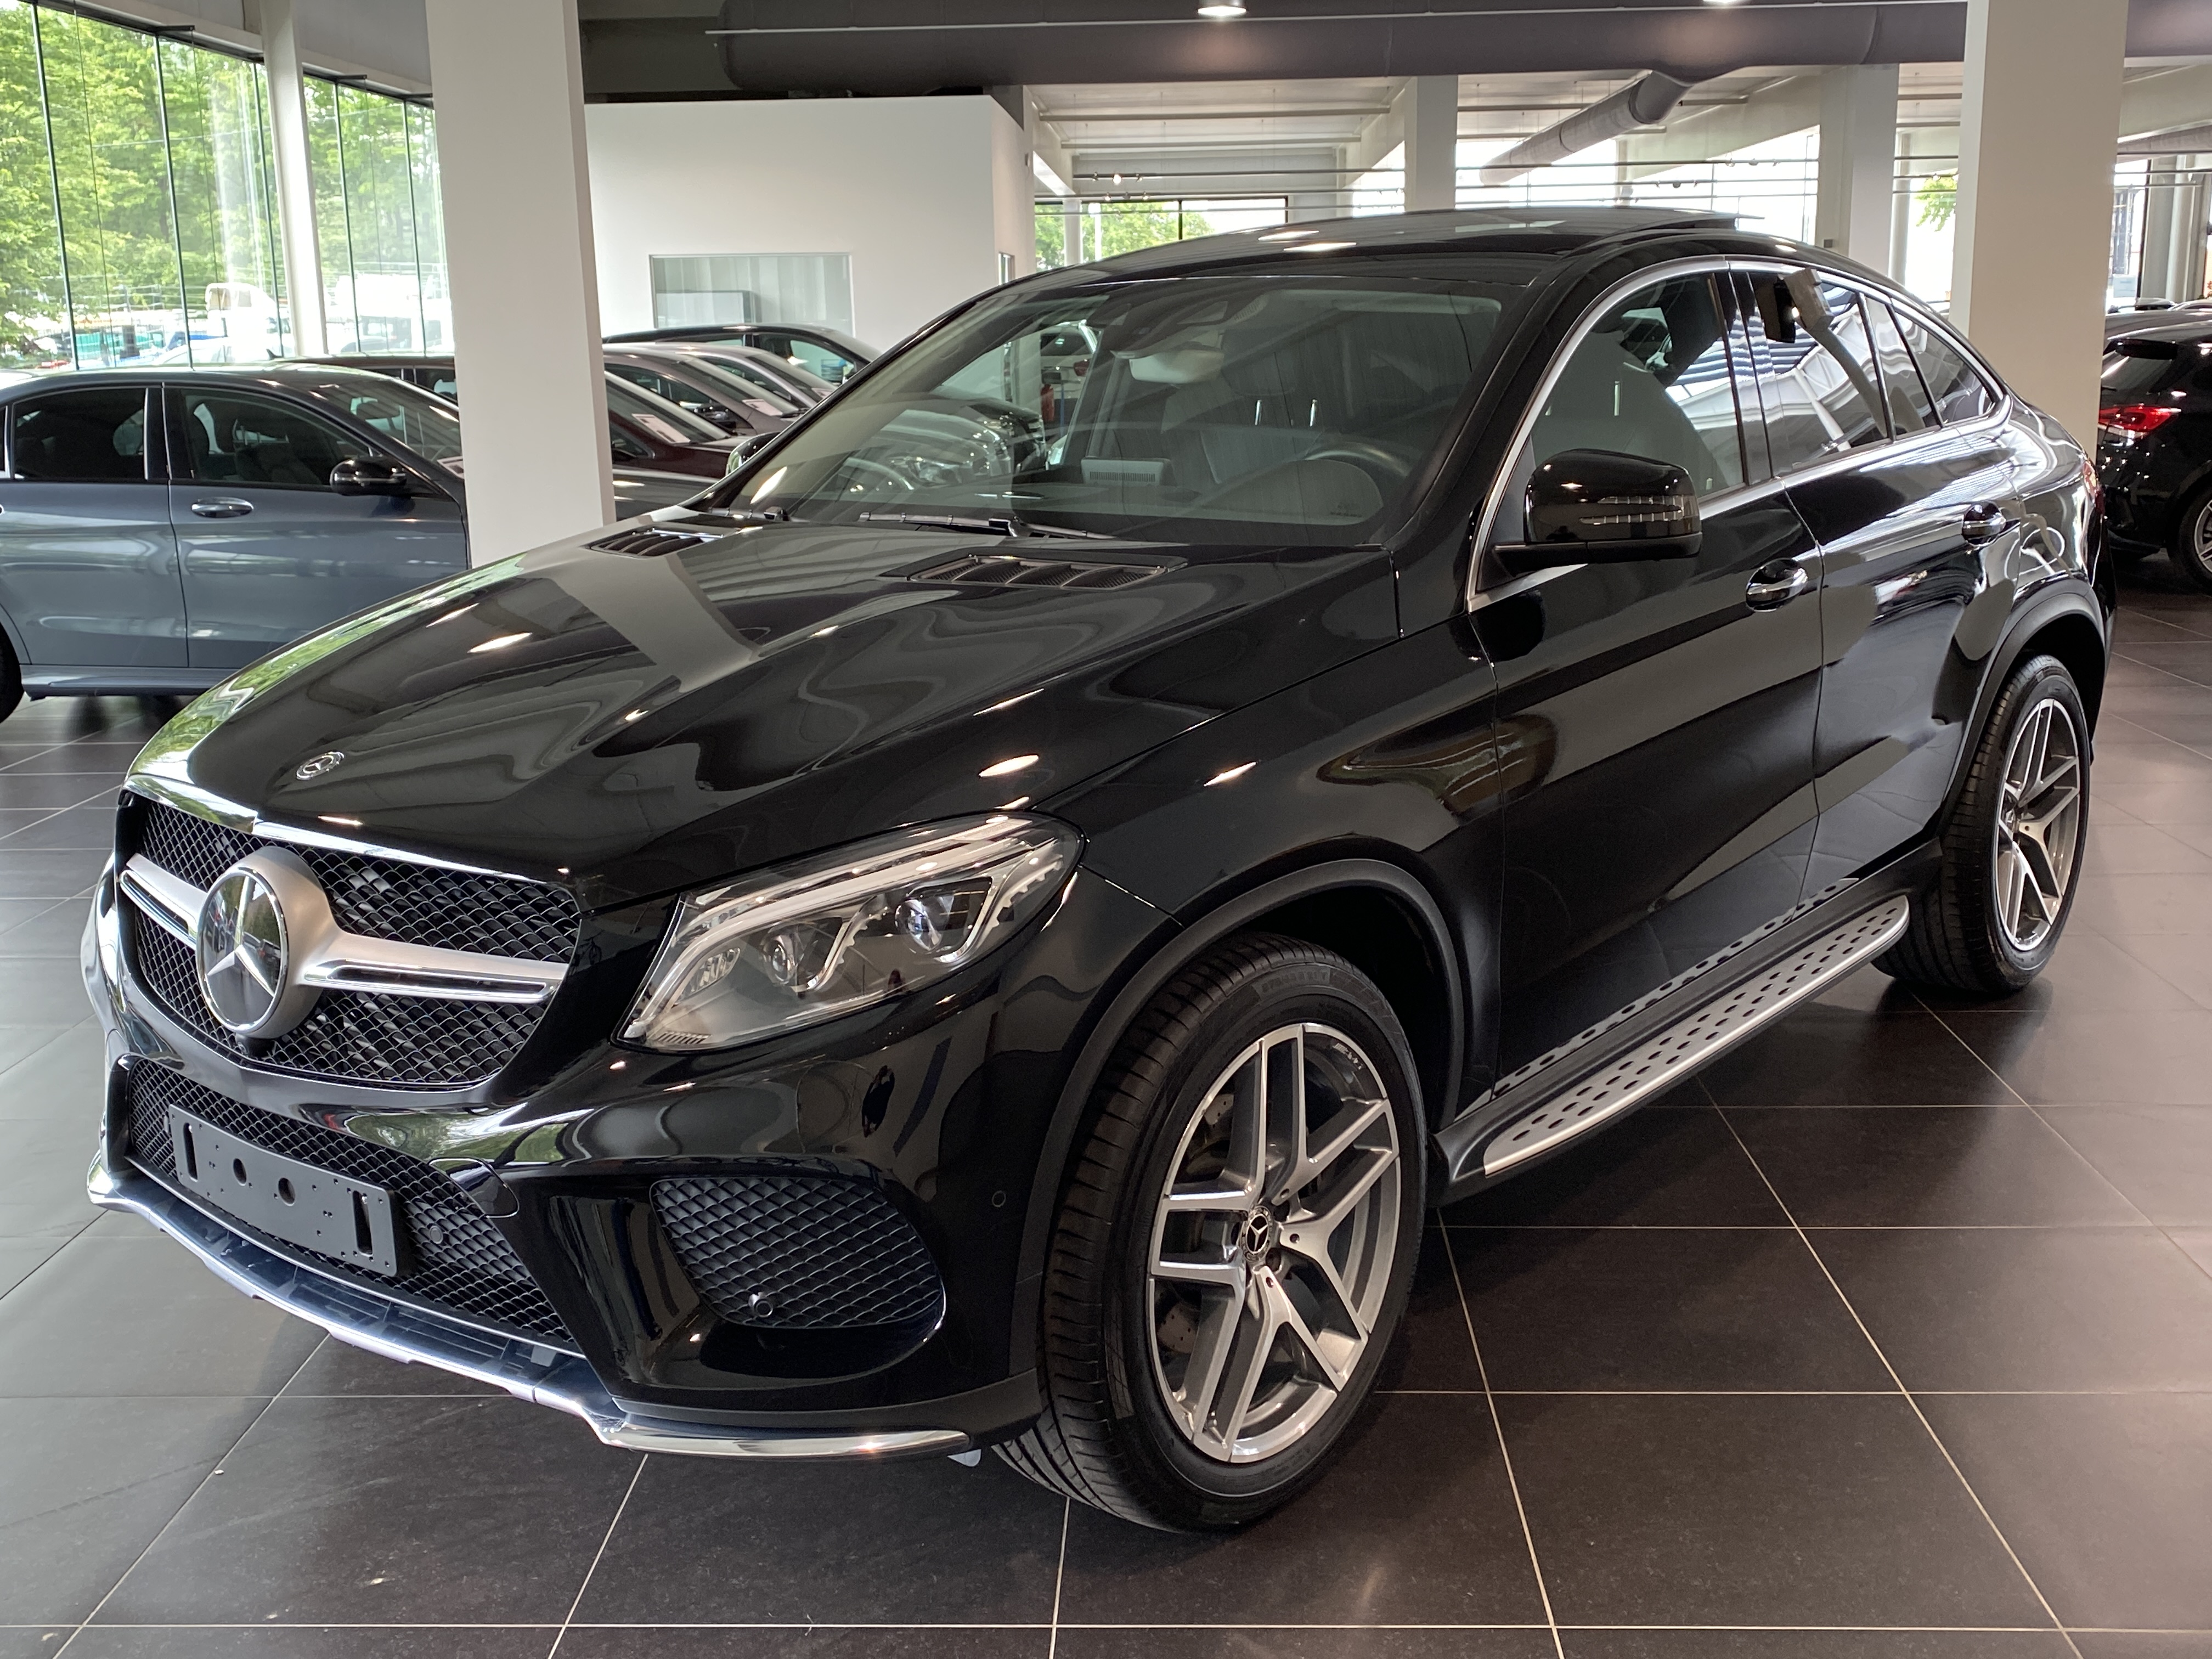 MERCEDES-BENZ GLE 350 d 4M Coupe Panorama, Distronic, Keyless-Go, Memory Seats